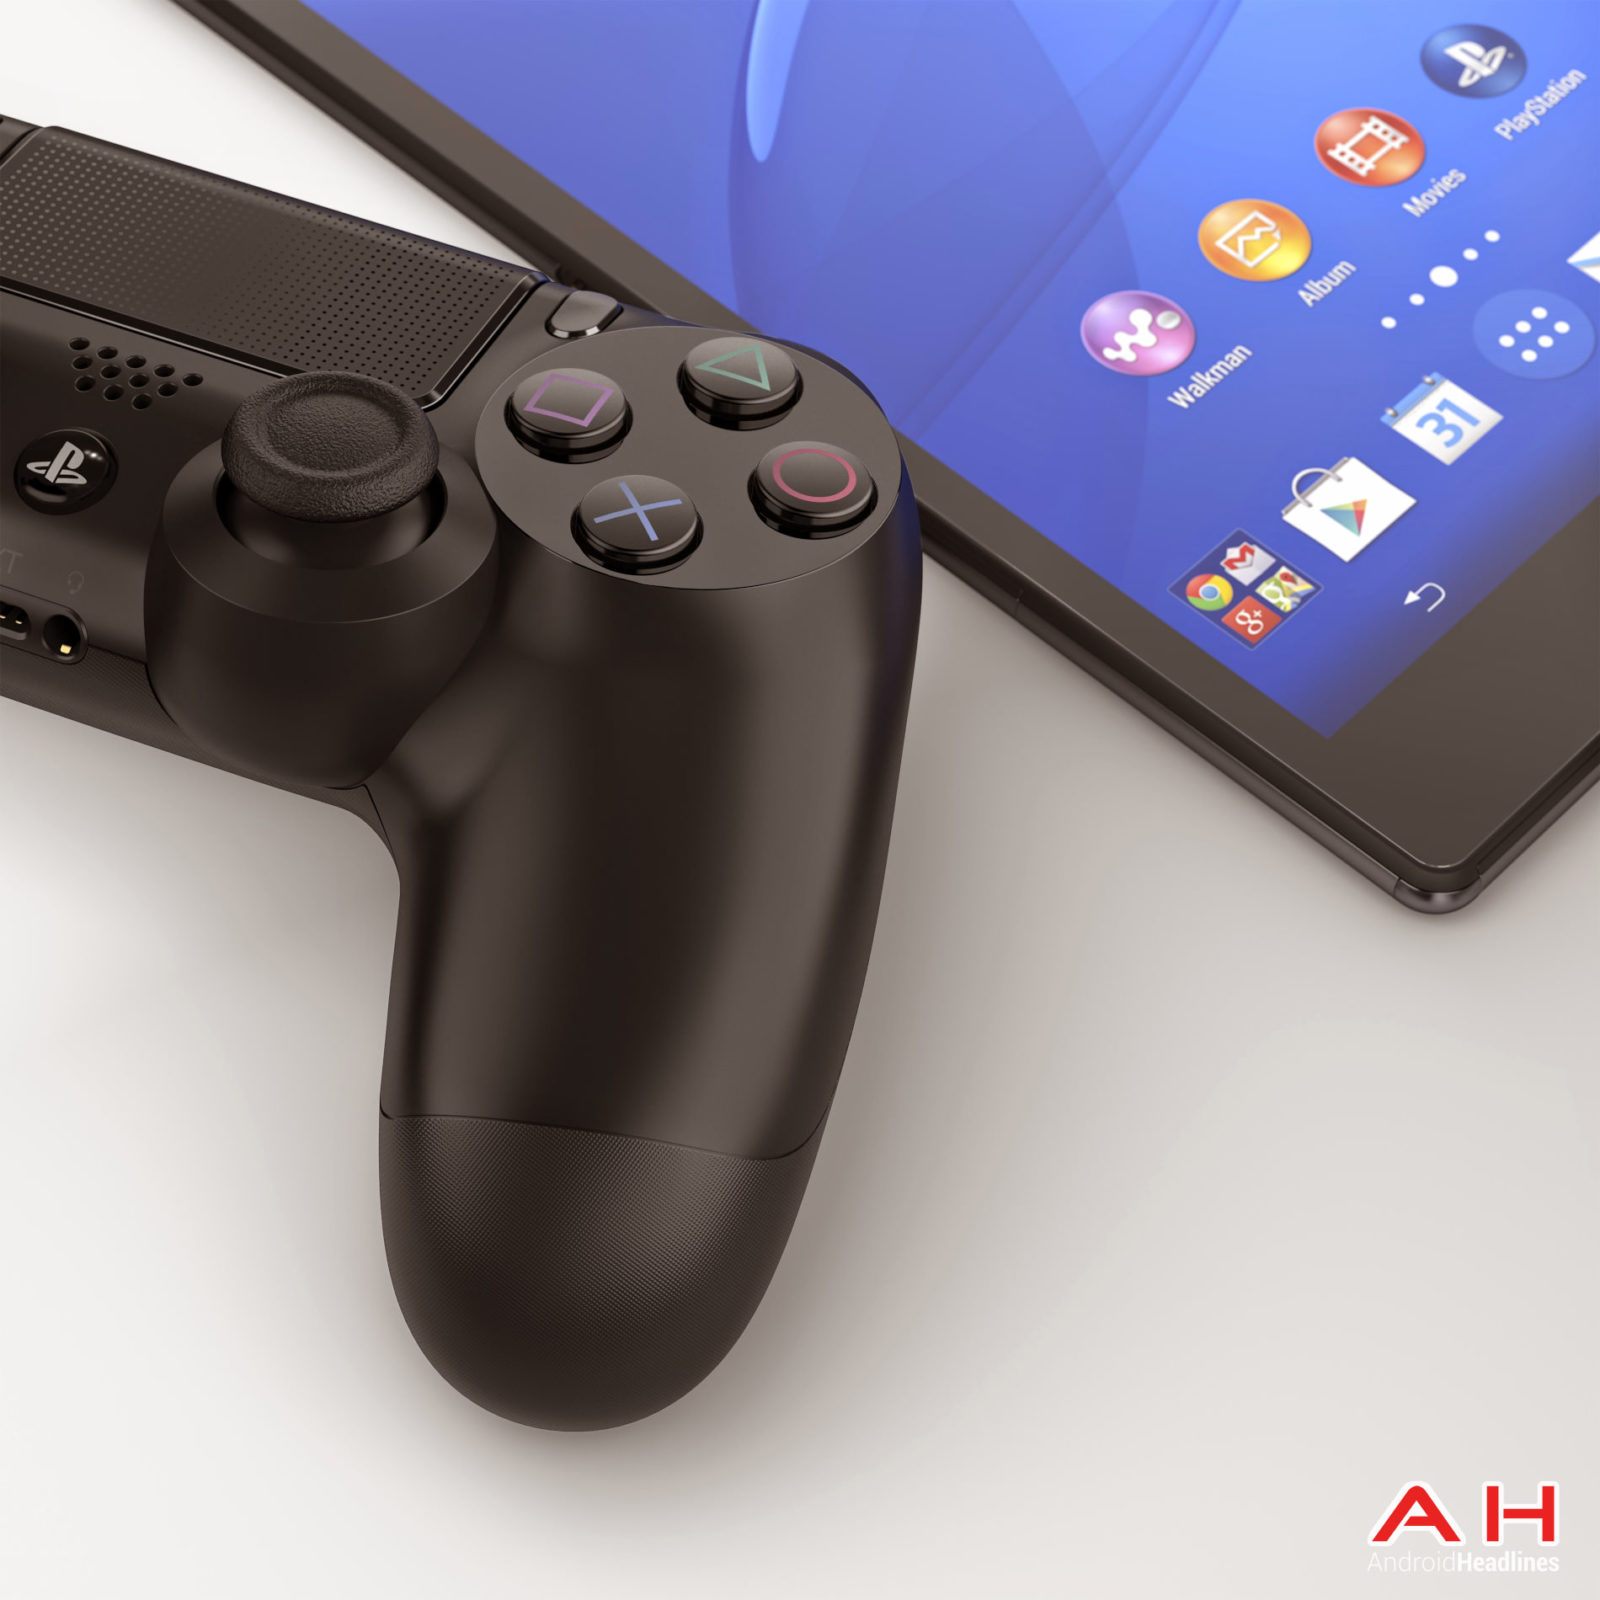 12_Xperia_Z3_Tablet_Compact_PS4_Remote